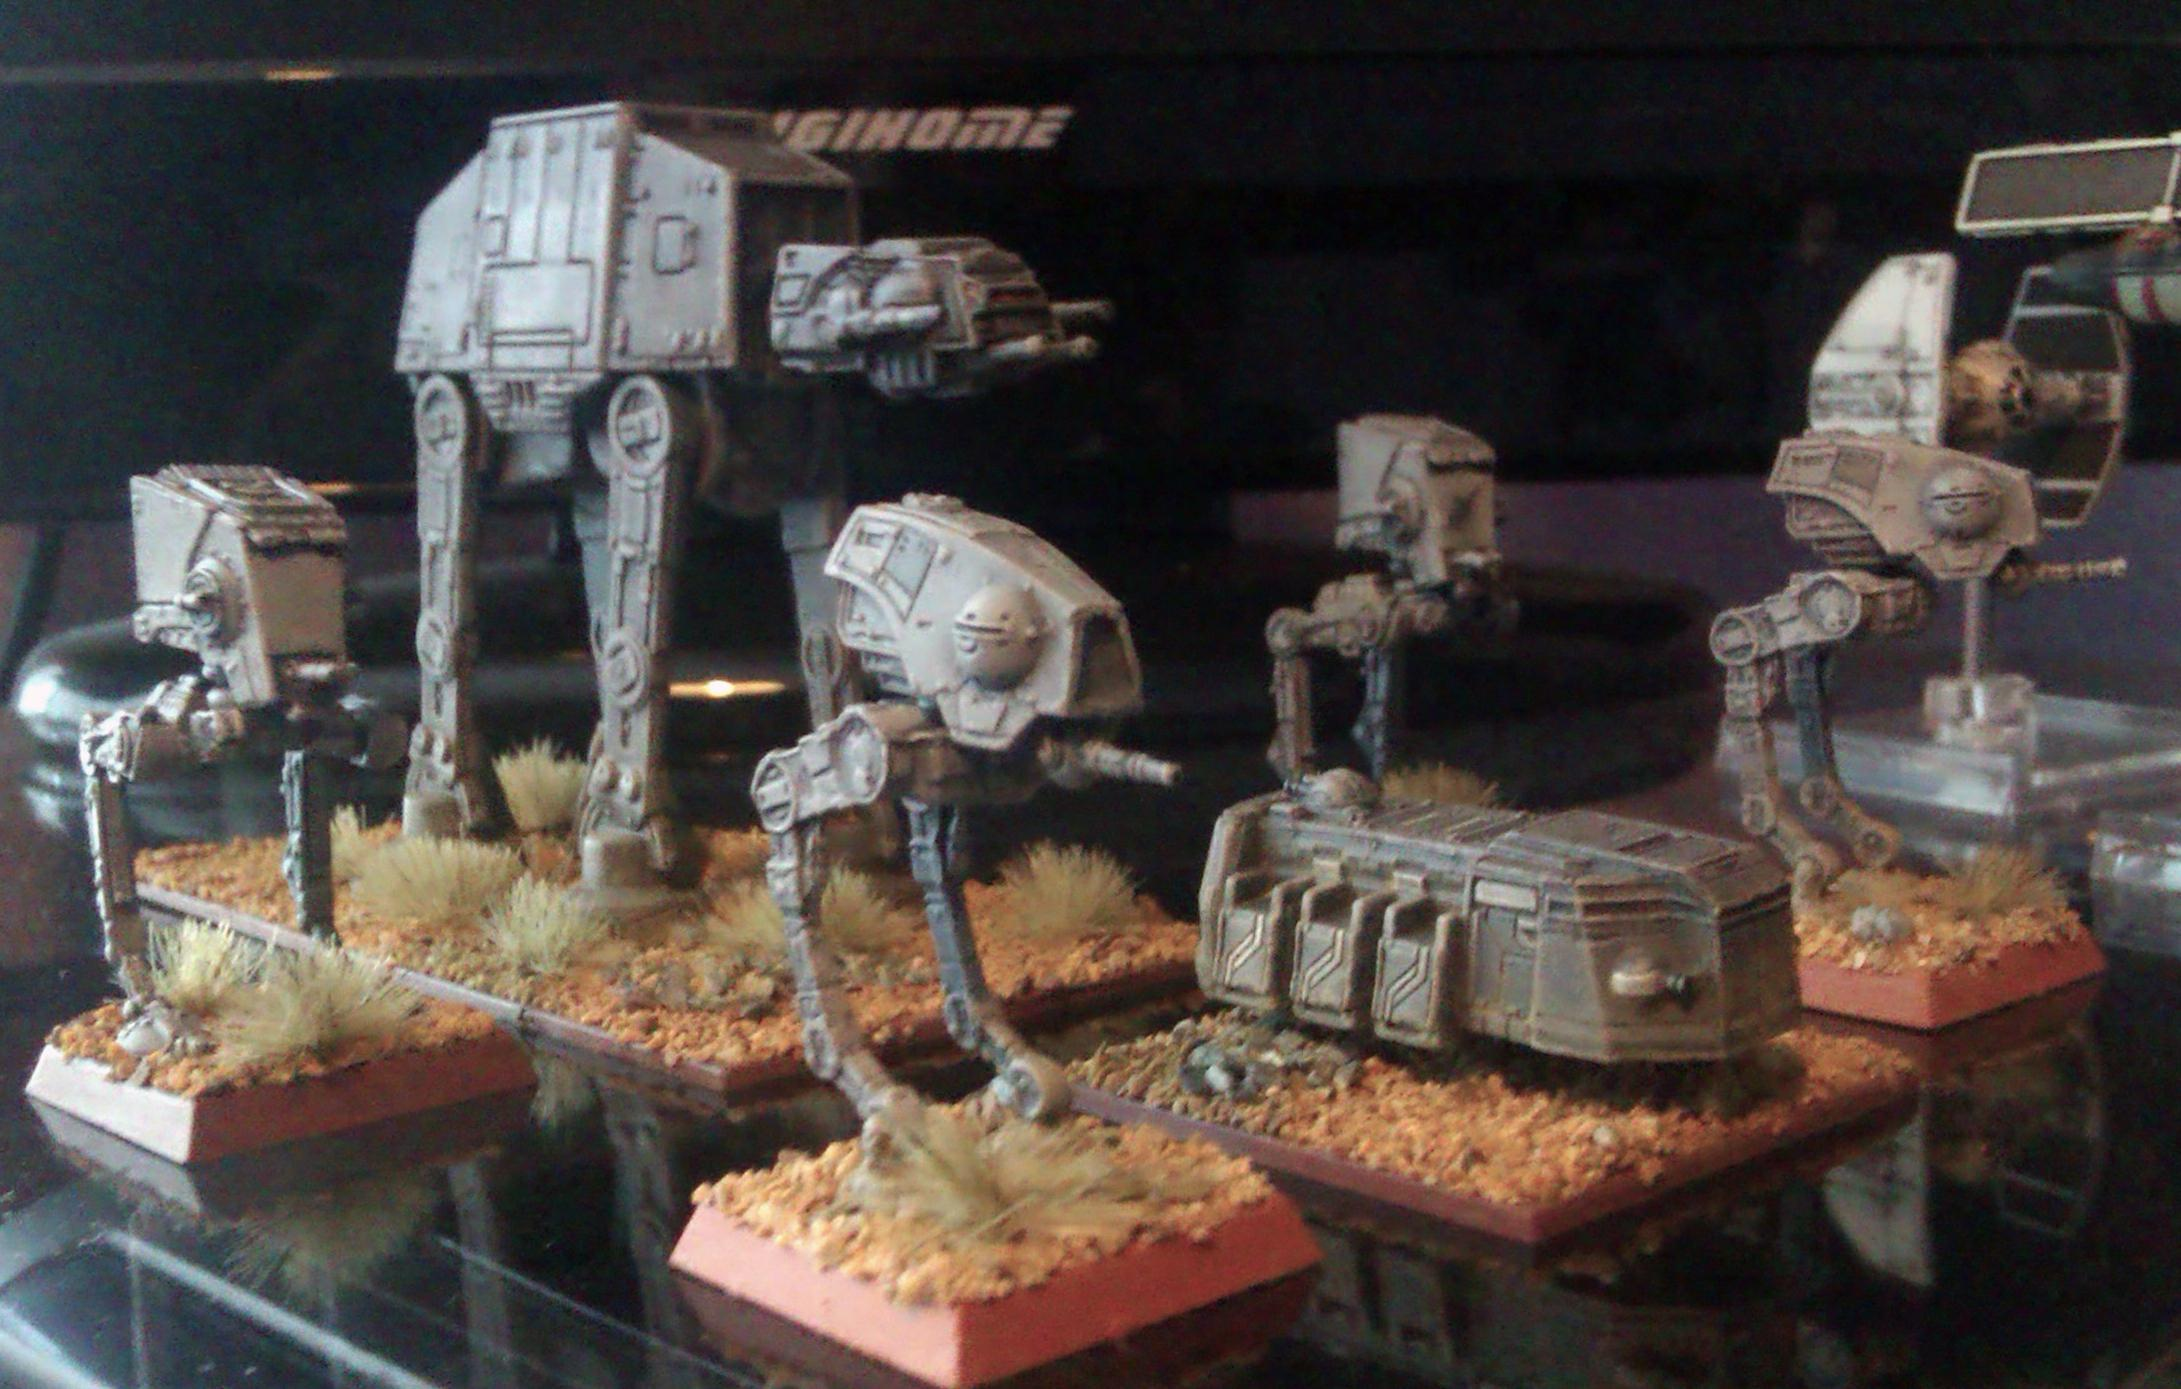 6mm, AT-AT, At-dp, At-st, Empire, Epic, Imperial, Mech, Robot, Star Wars, Vehicle, Walkers